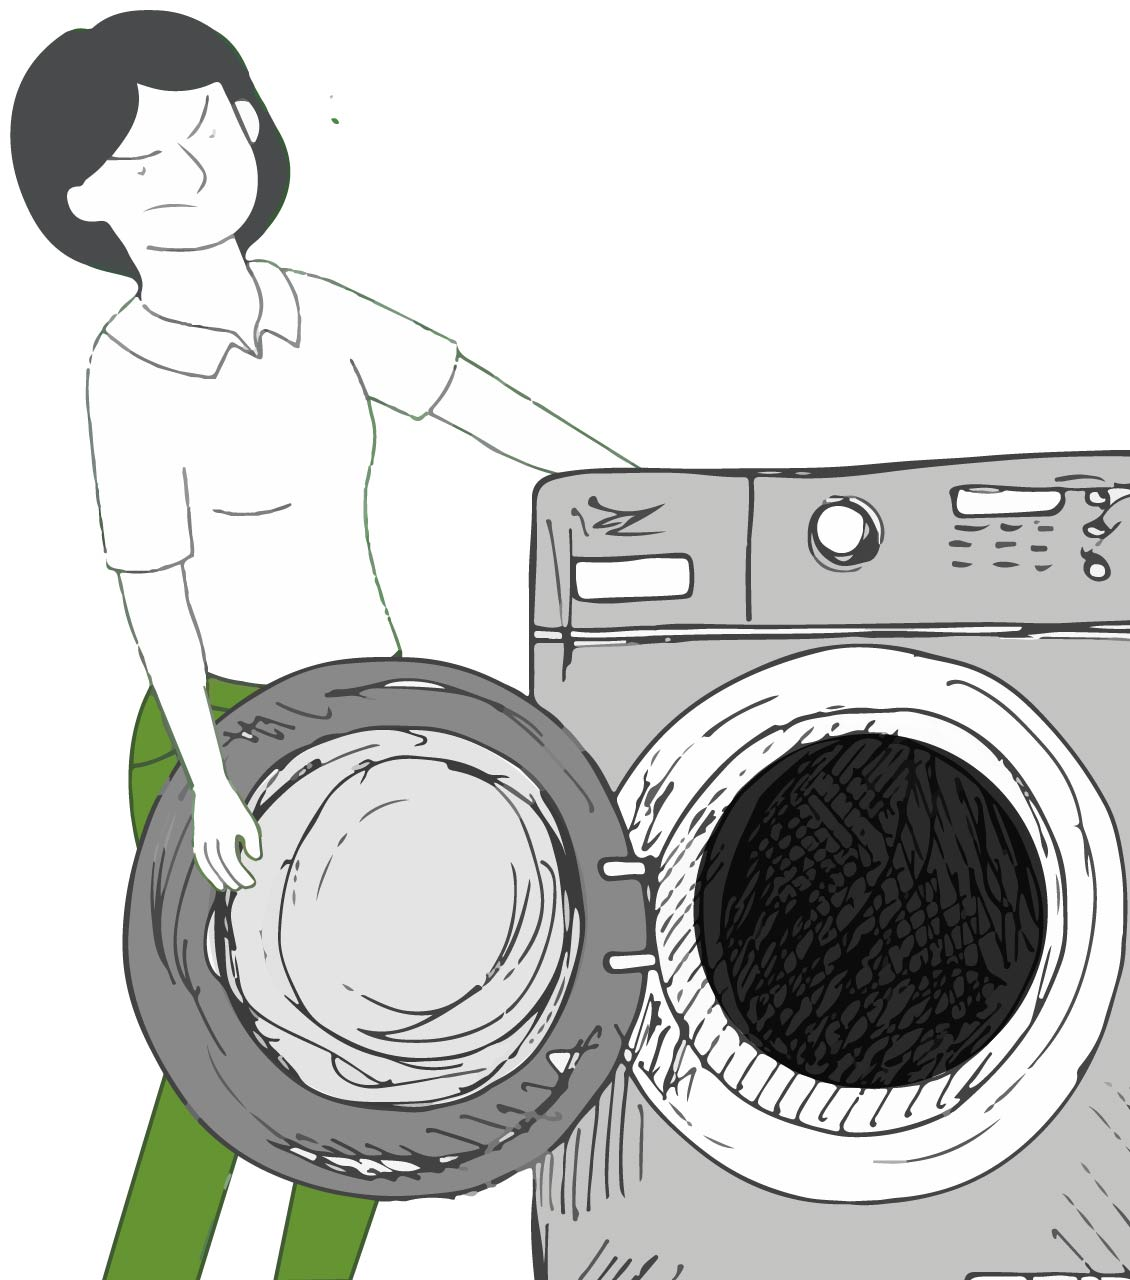 Dallas washer and dryer removal services